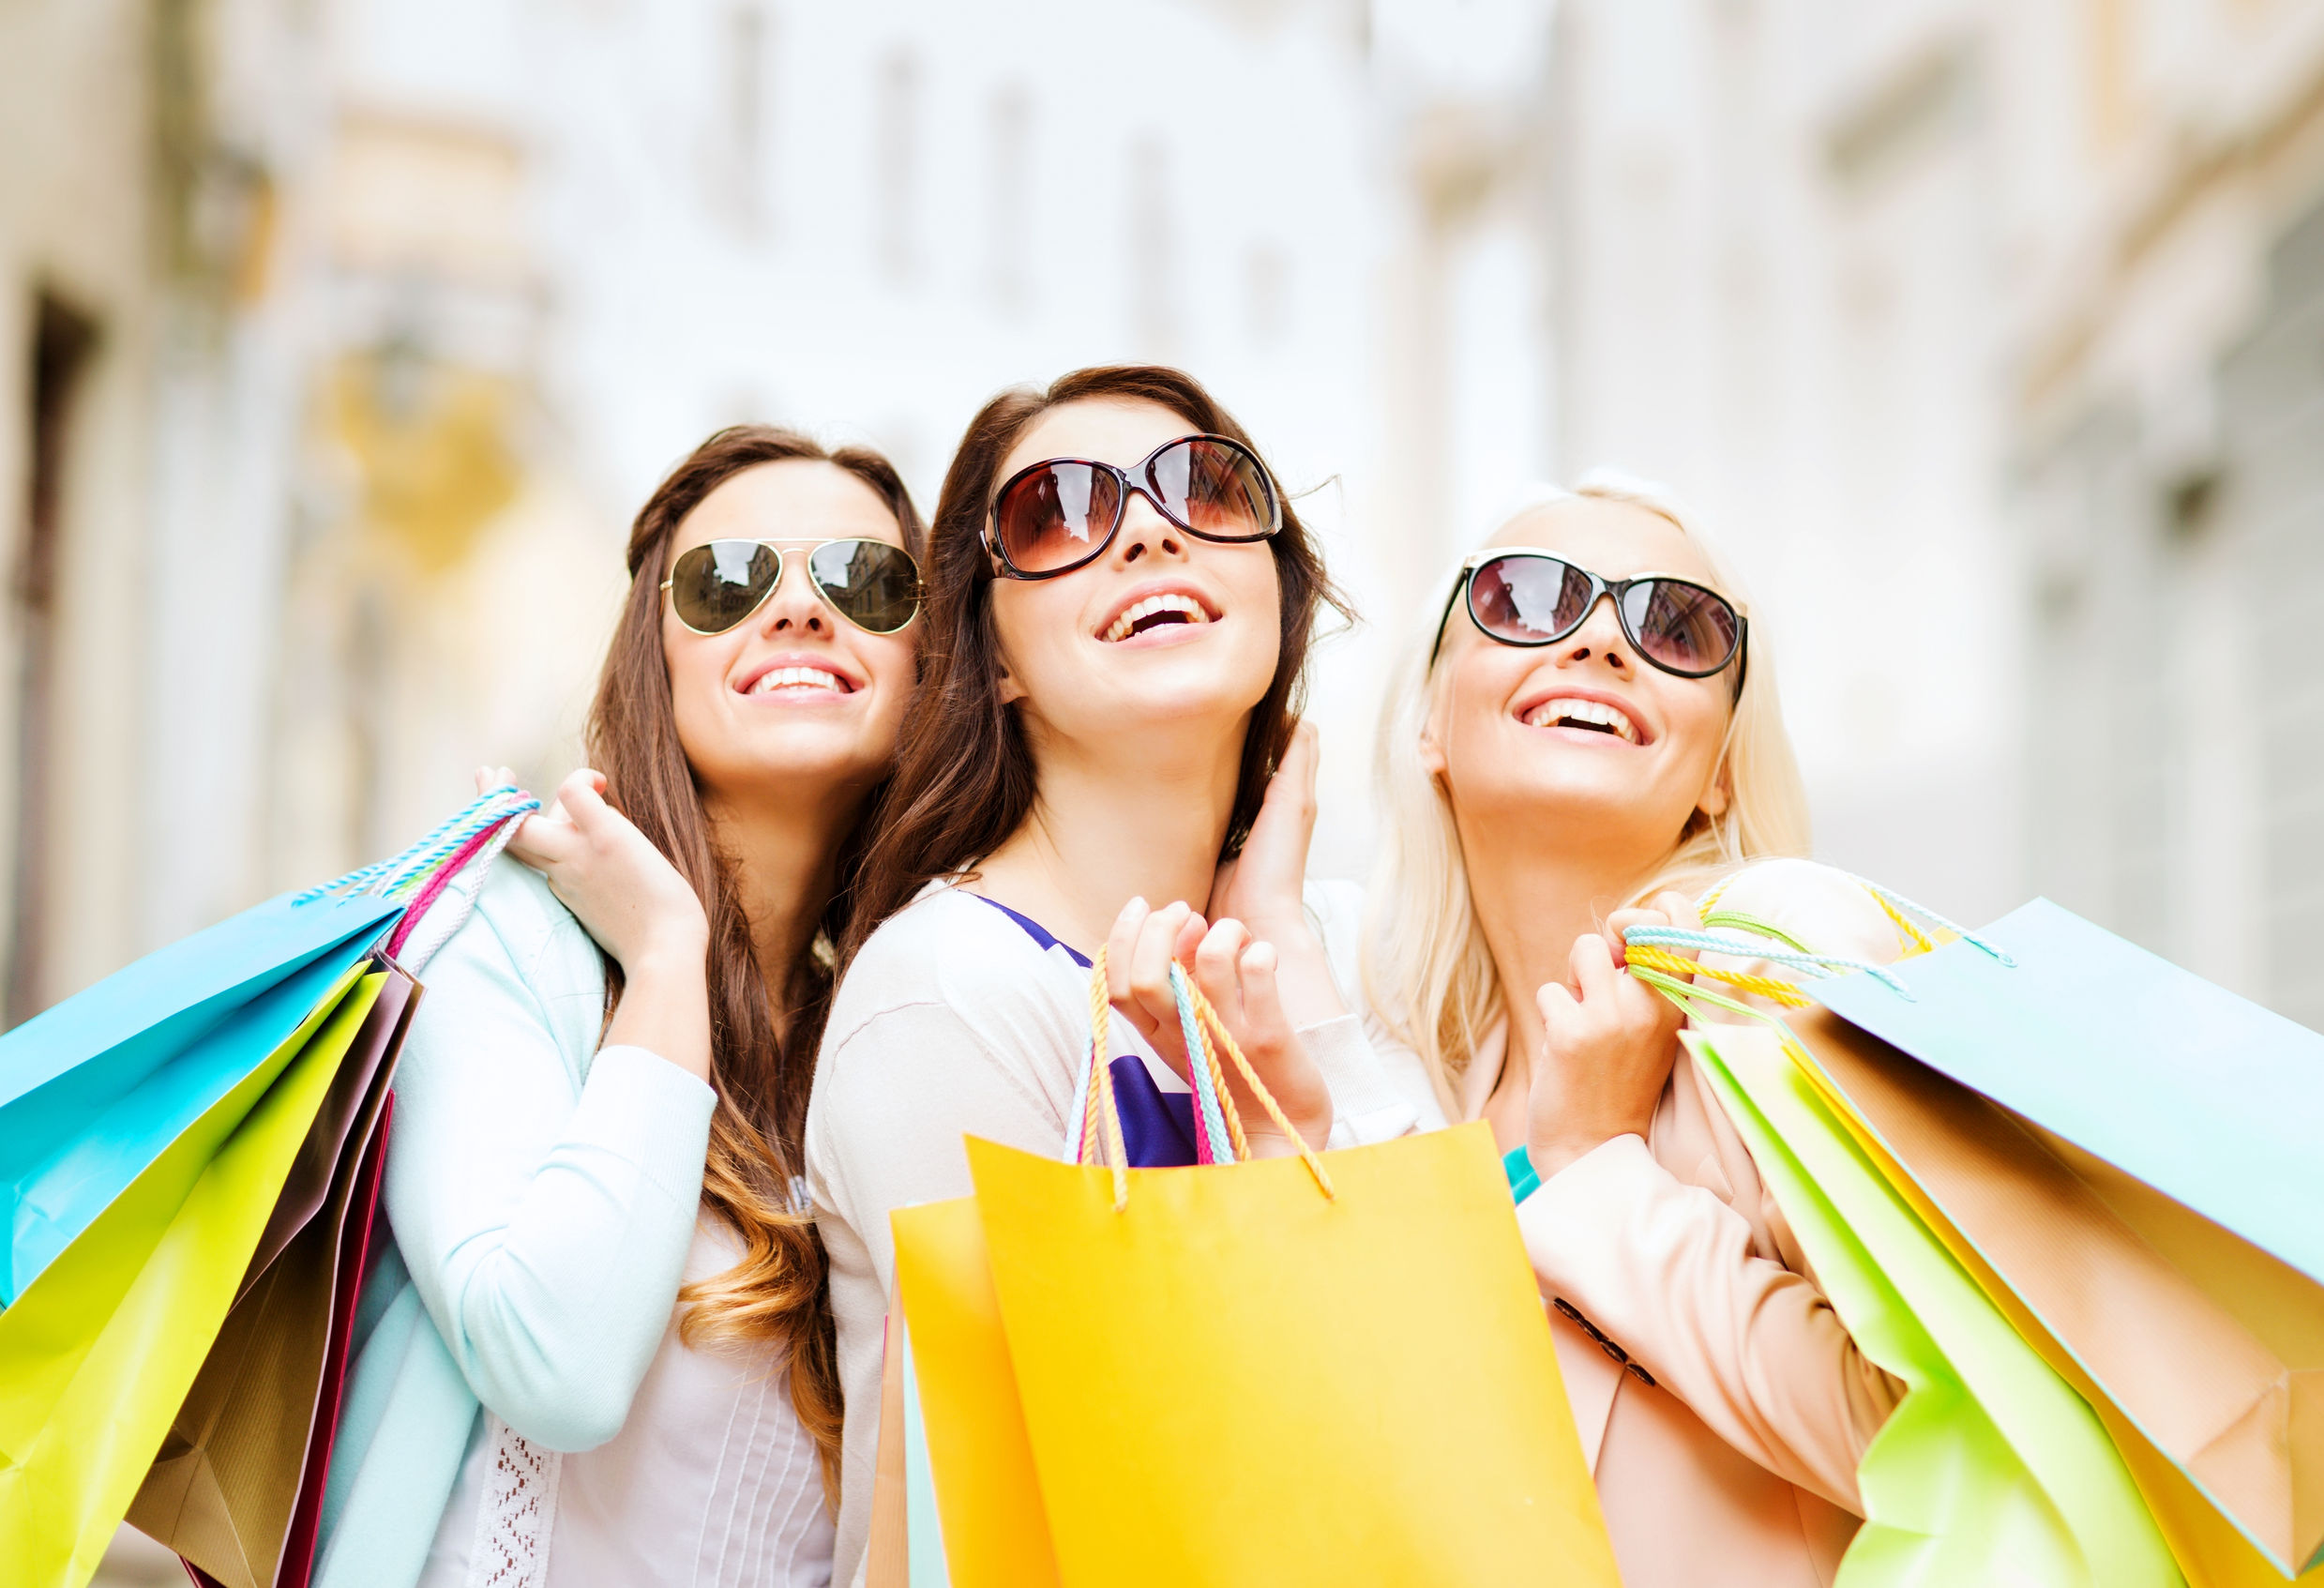 Girls shopping with colorful bags